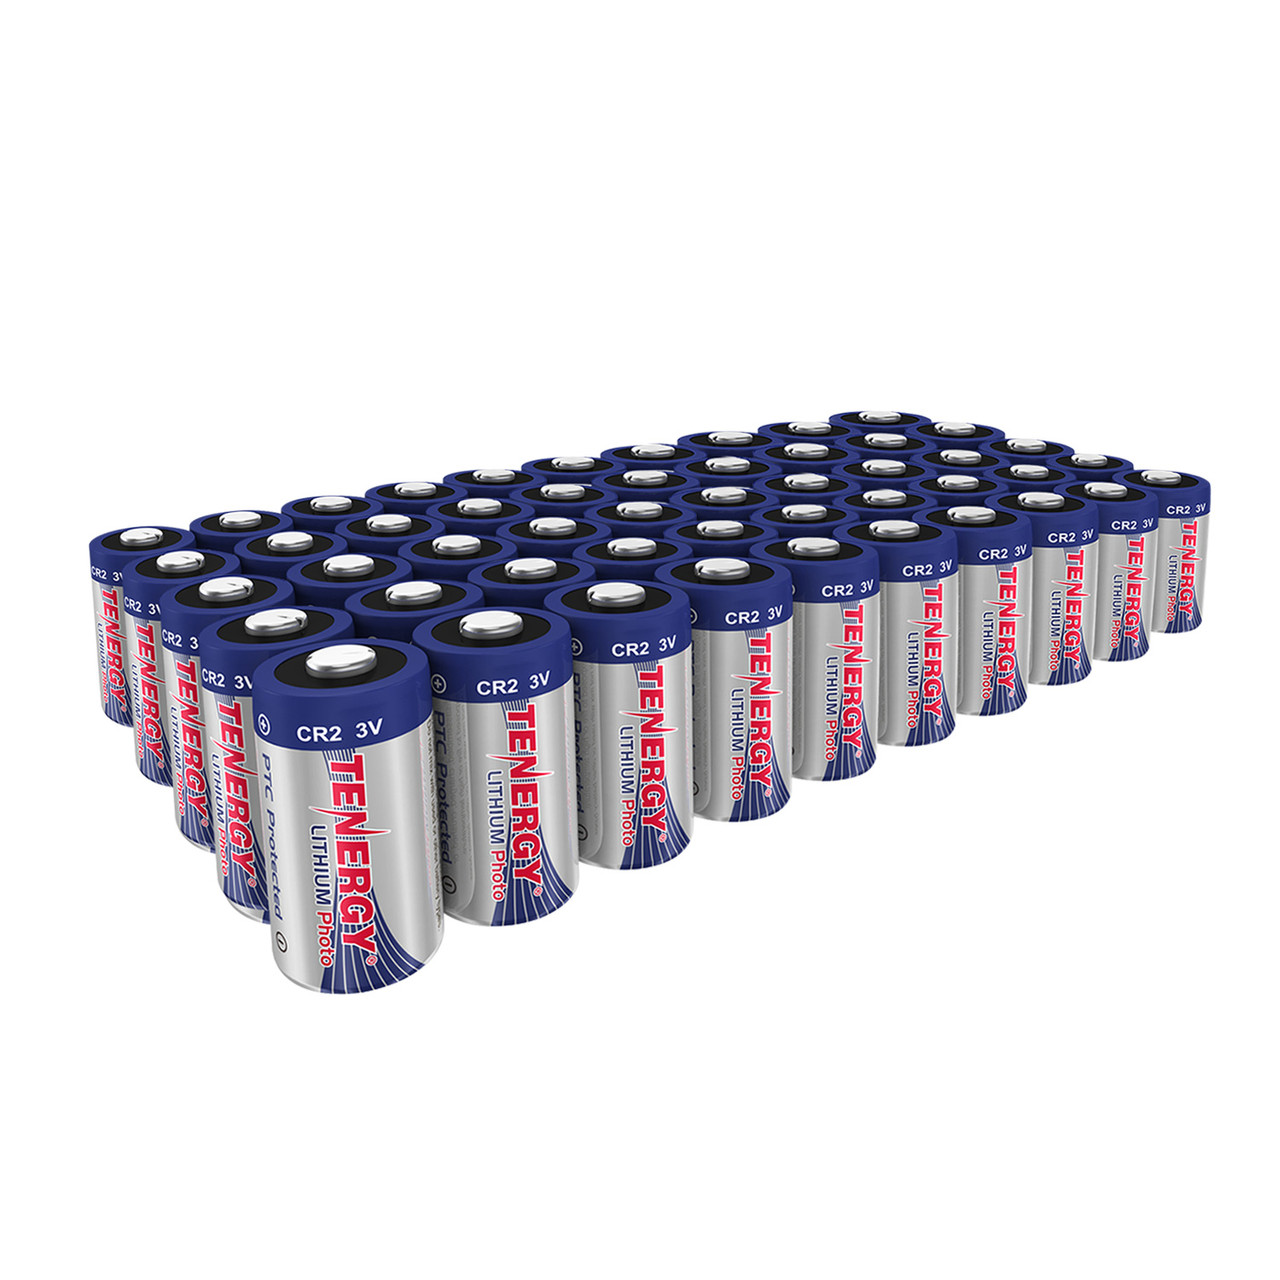 50 Pcs Tenergy Propel CR2 3V Lithium Battery with PTC Protection